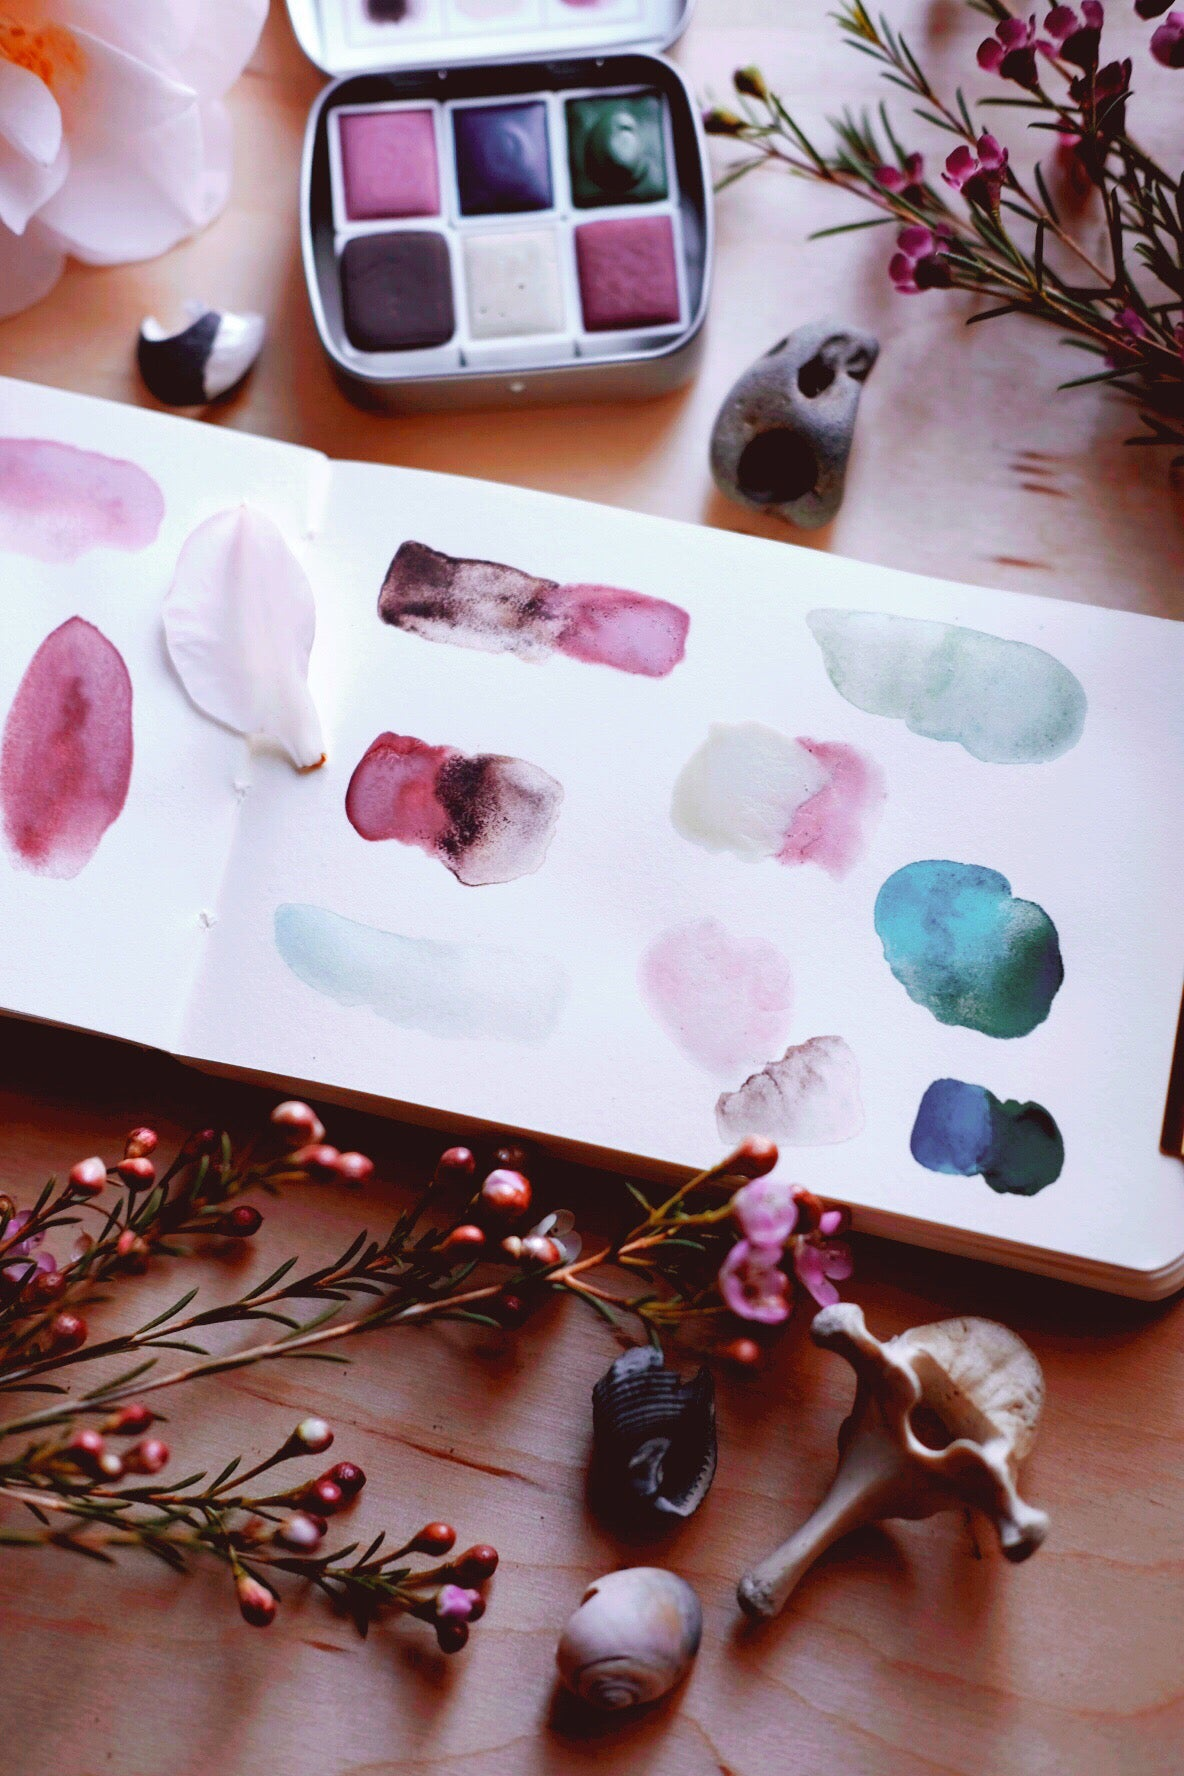 RESERVE for Cécile + Seashell Floret - Limited edition Gemstone Mineral watercolor palette